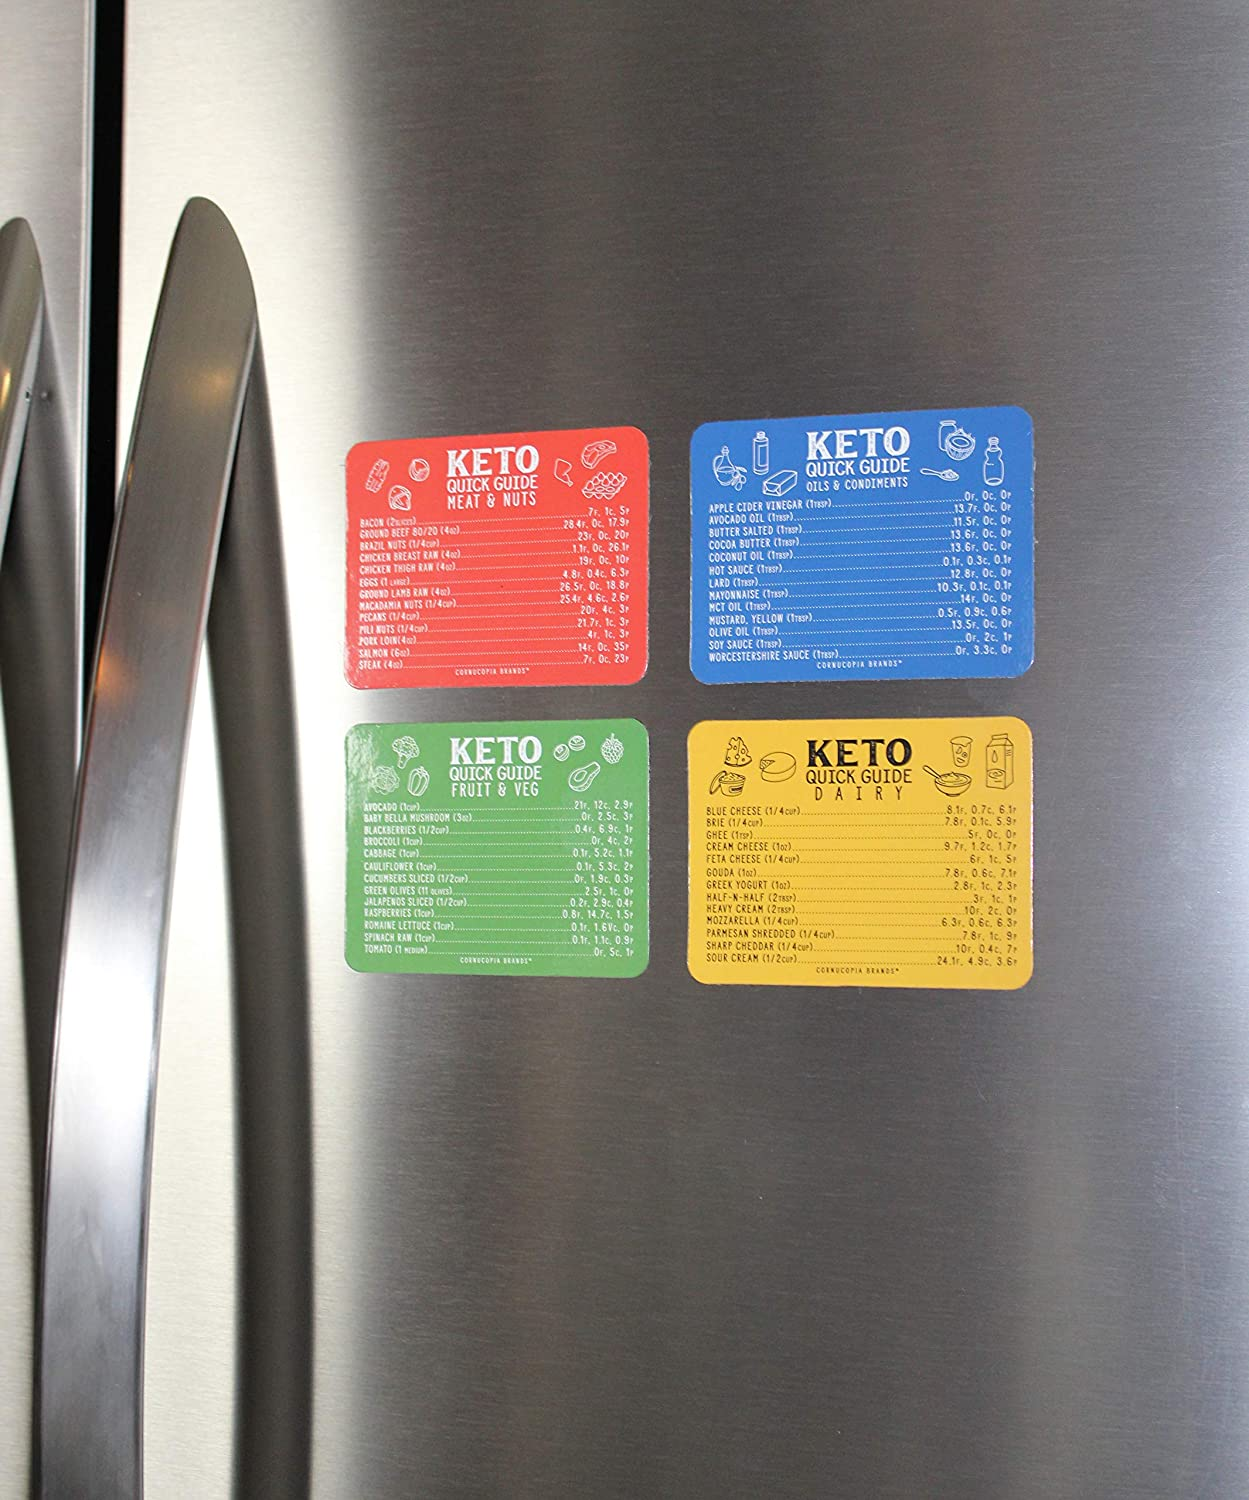 ; Quick Guide Fridge Magnet Reference Charts for Ketogenic Diet Foods Keto Cheat Sheet Magnets Set of 4